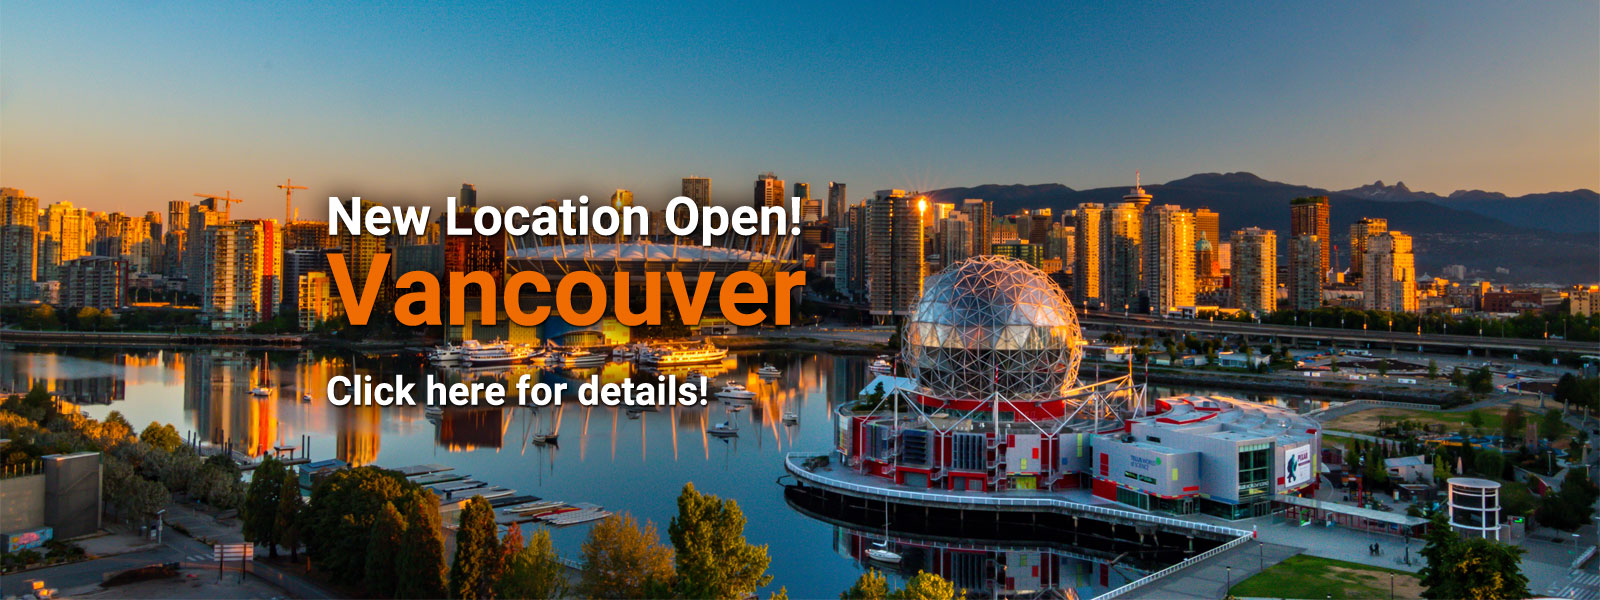 New Location Open! Vancouver